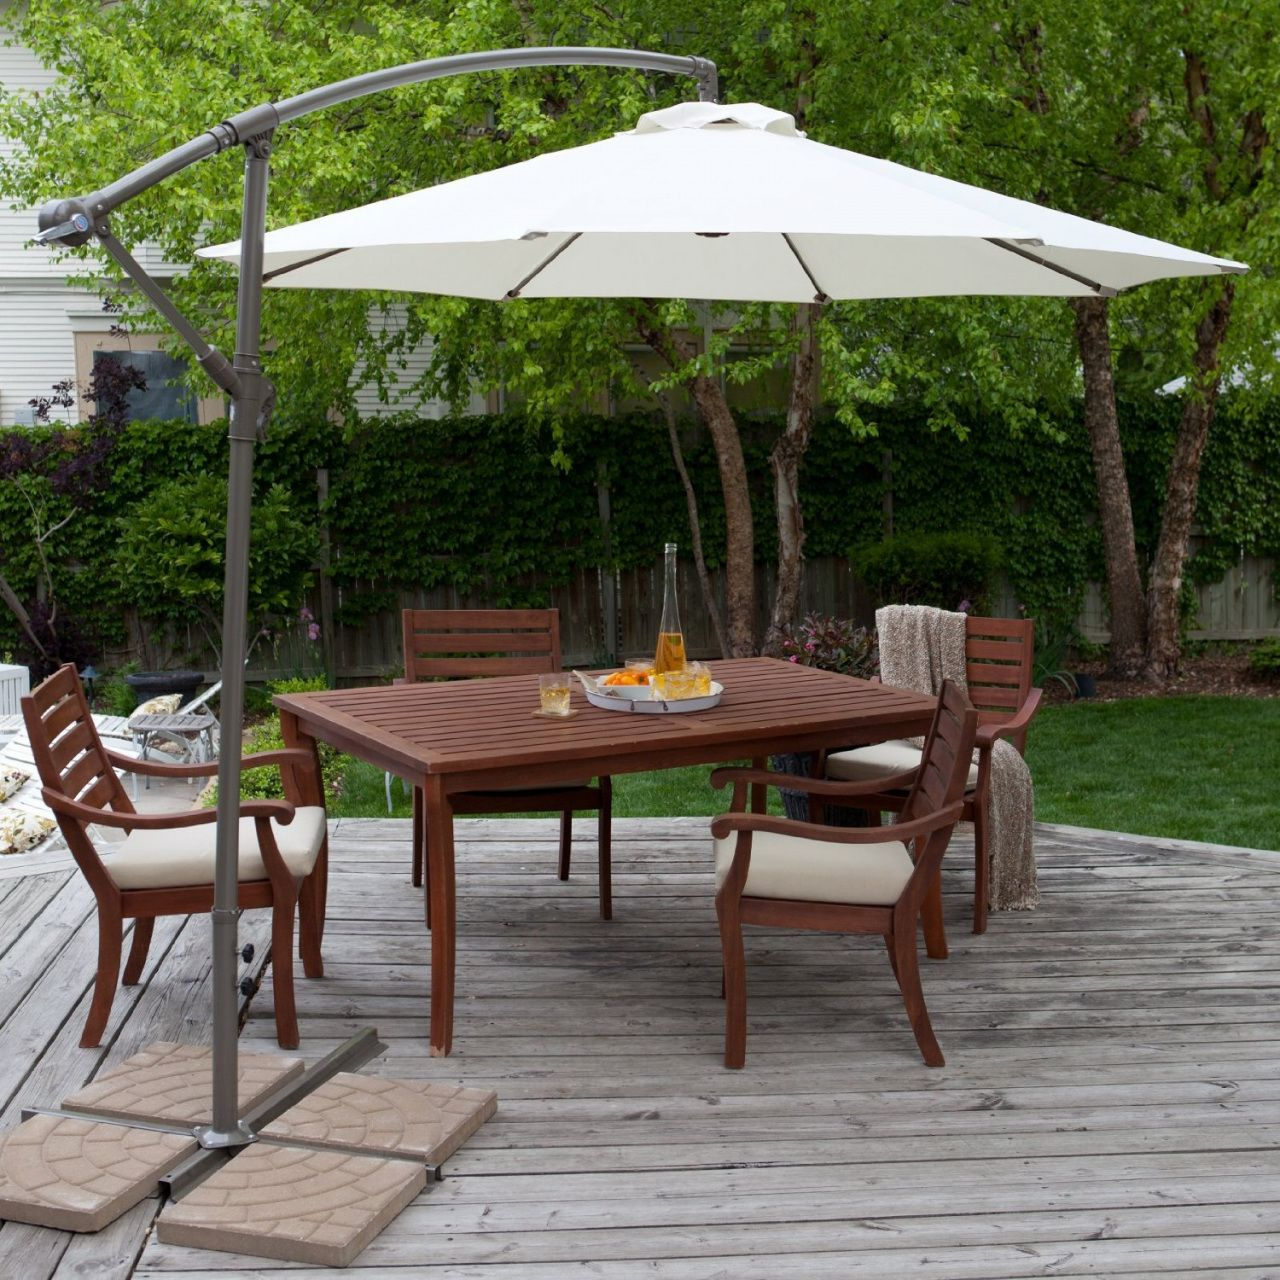 50 Small Patio Table With Umbrella Hole Diy Modern Furniture Check More At Http